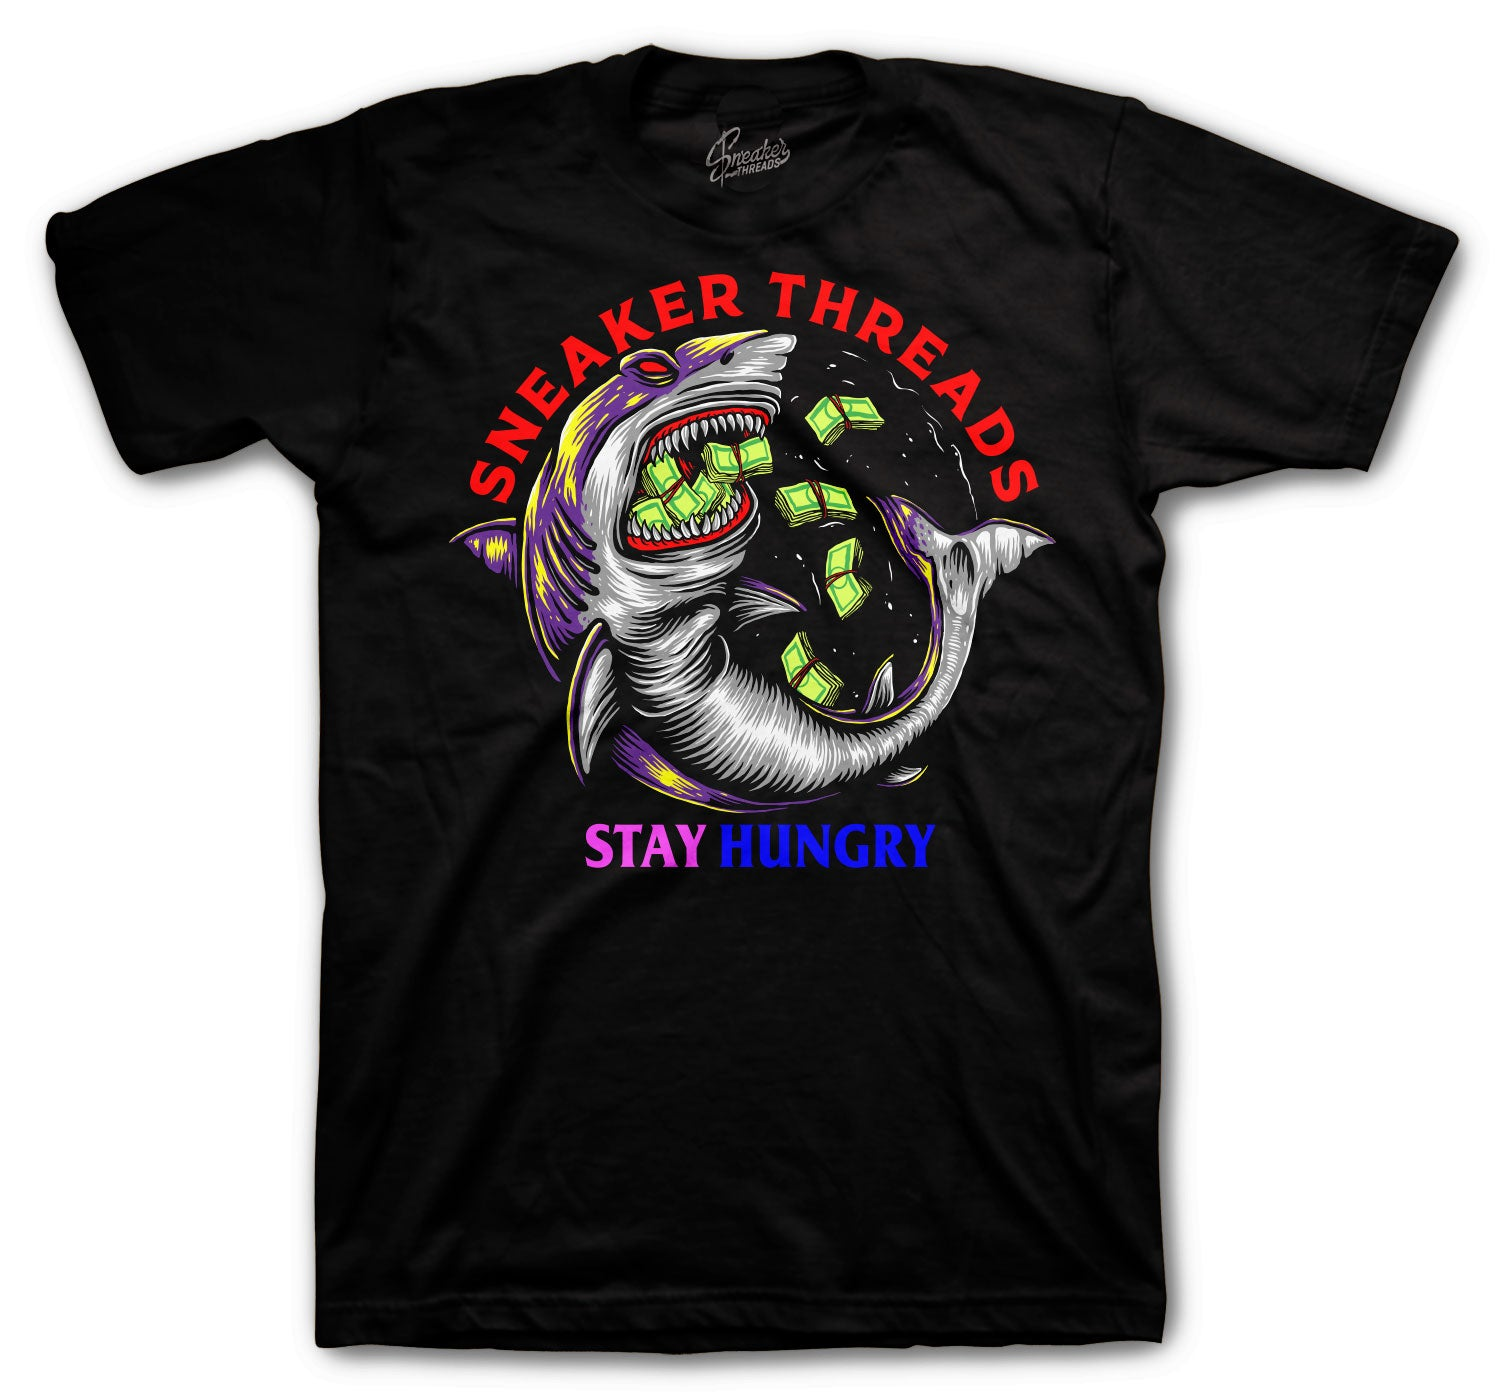 Jordan 5 What The Stay Hungry Shirt